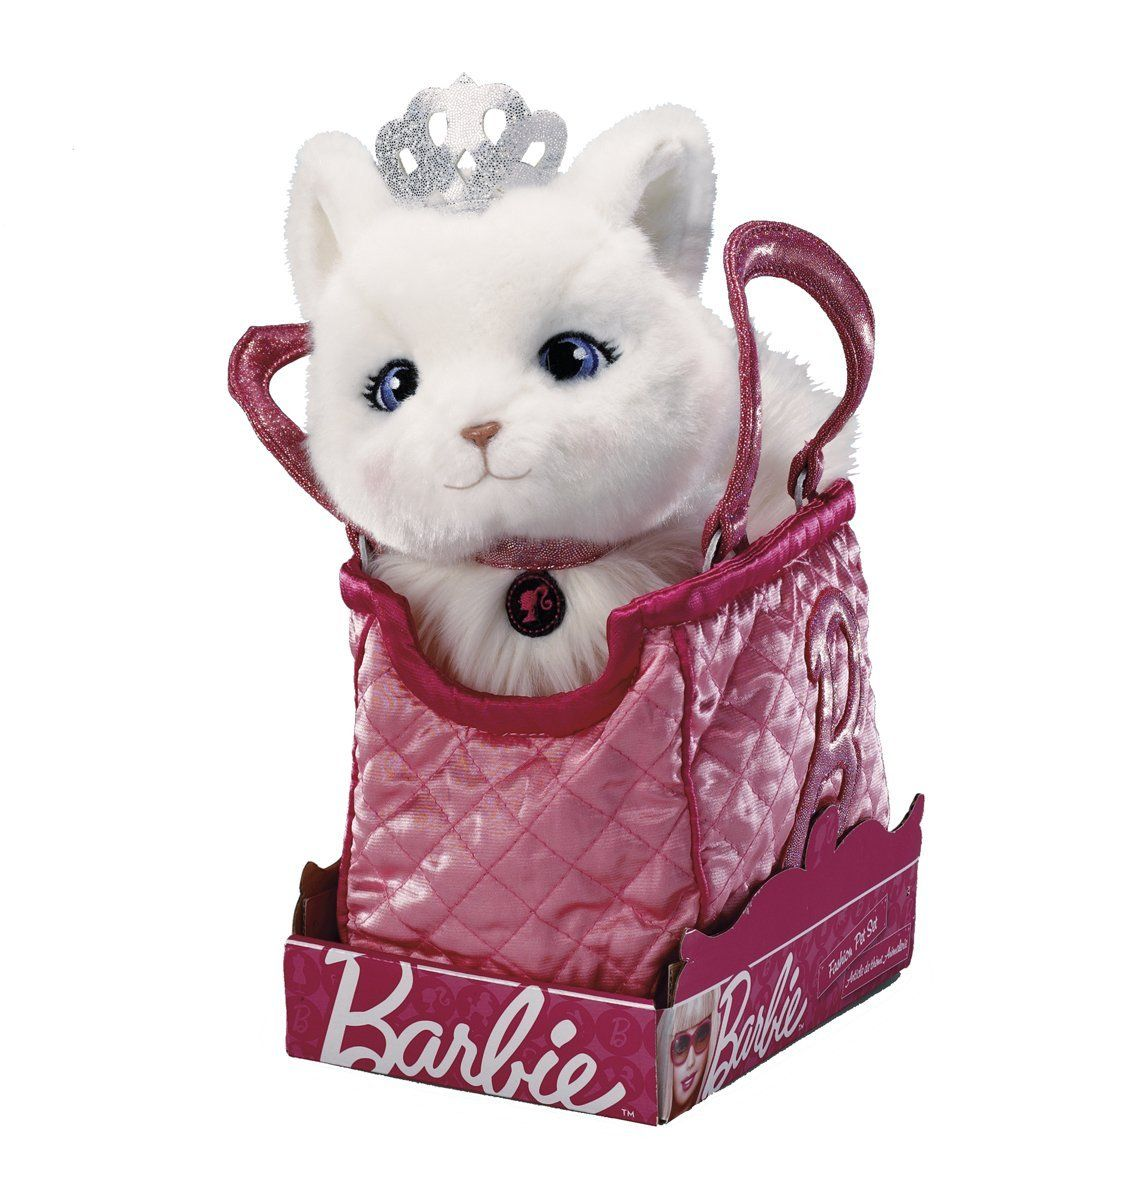 Barbie Pets Blissa Kitten With Quilted B Bag And Dress Amazon Co Uk Toys Games Brinquedos